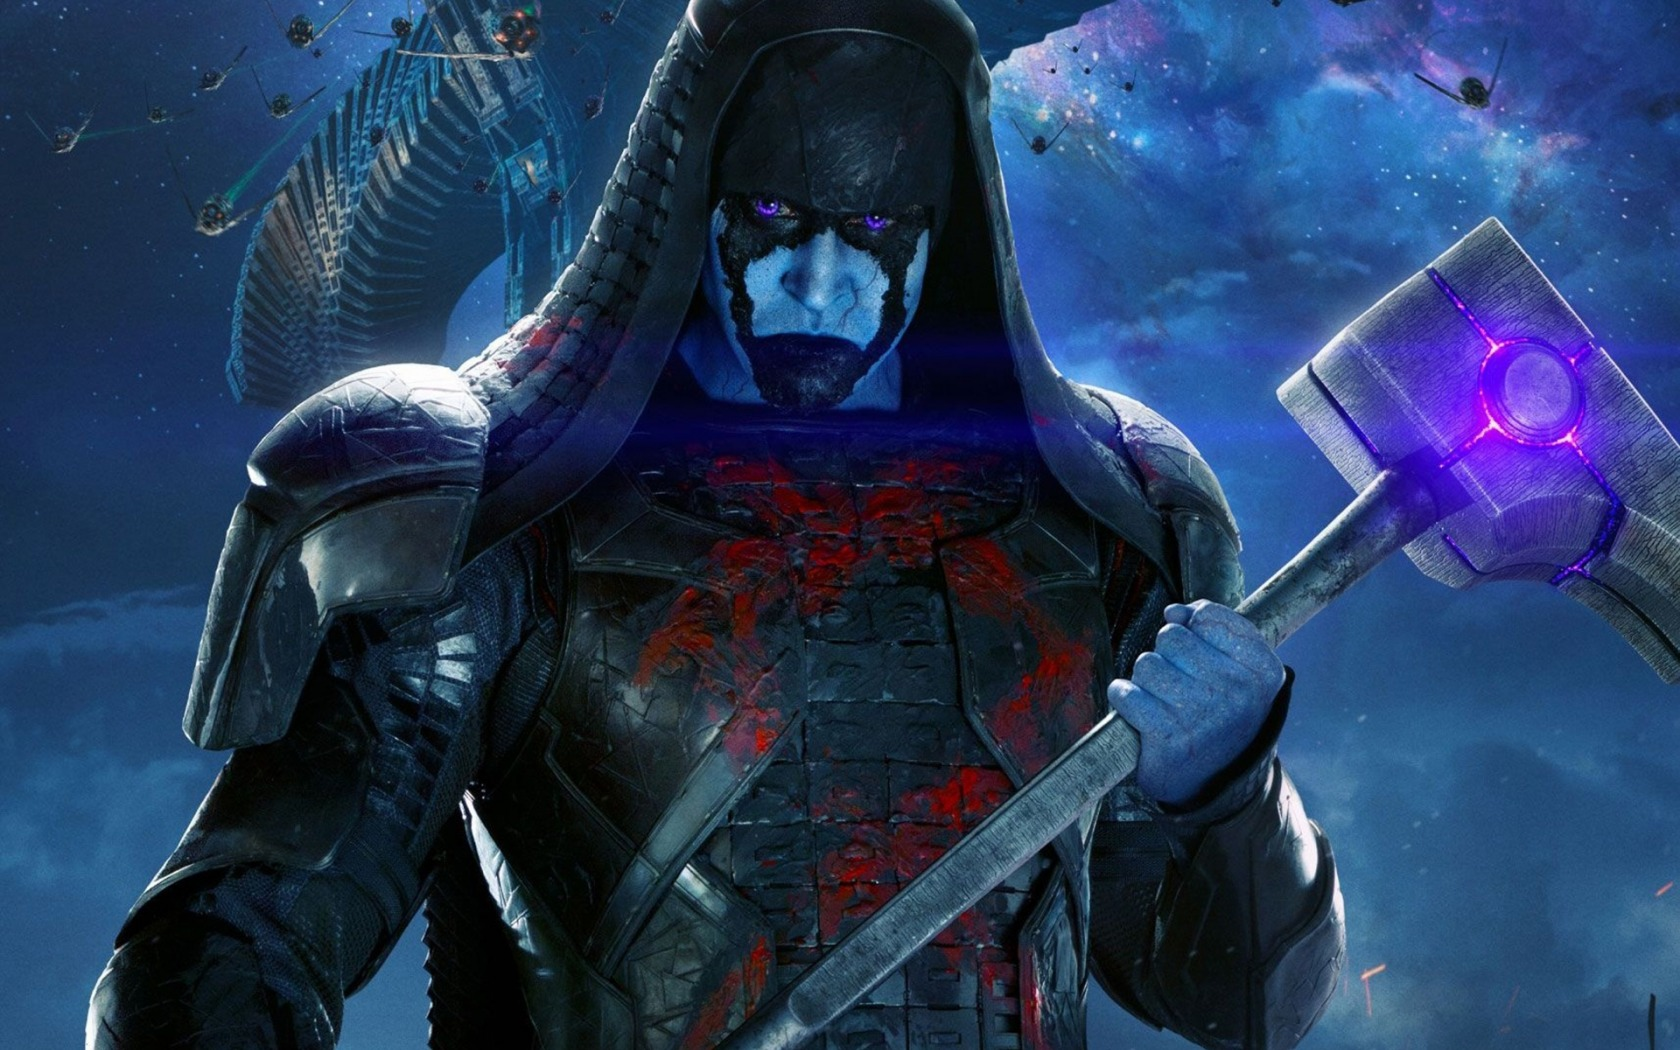 Ronan the Accuser. he is holding a hammer